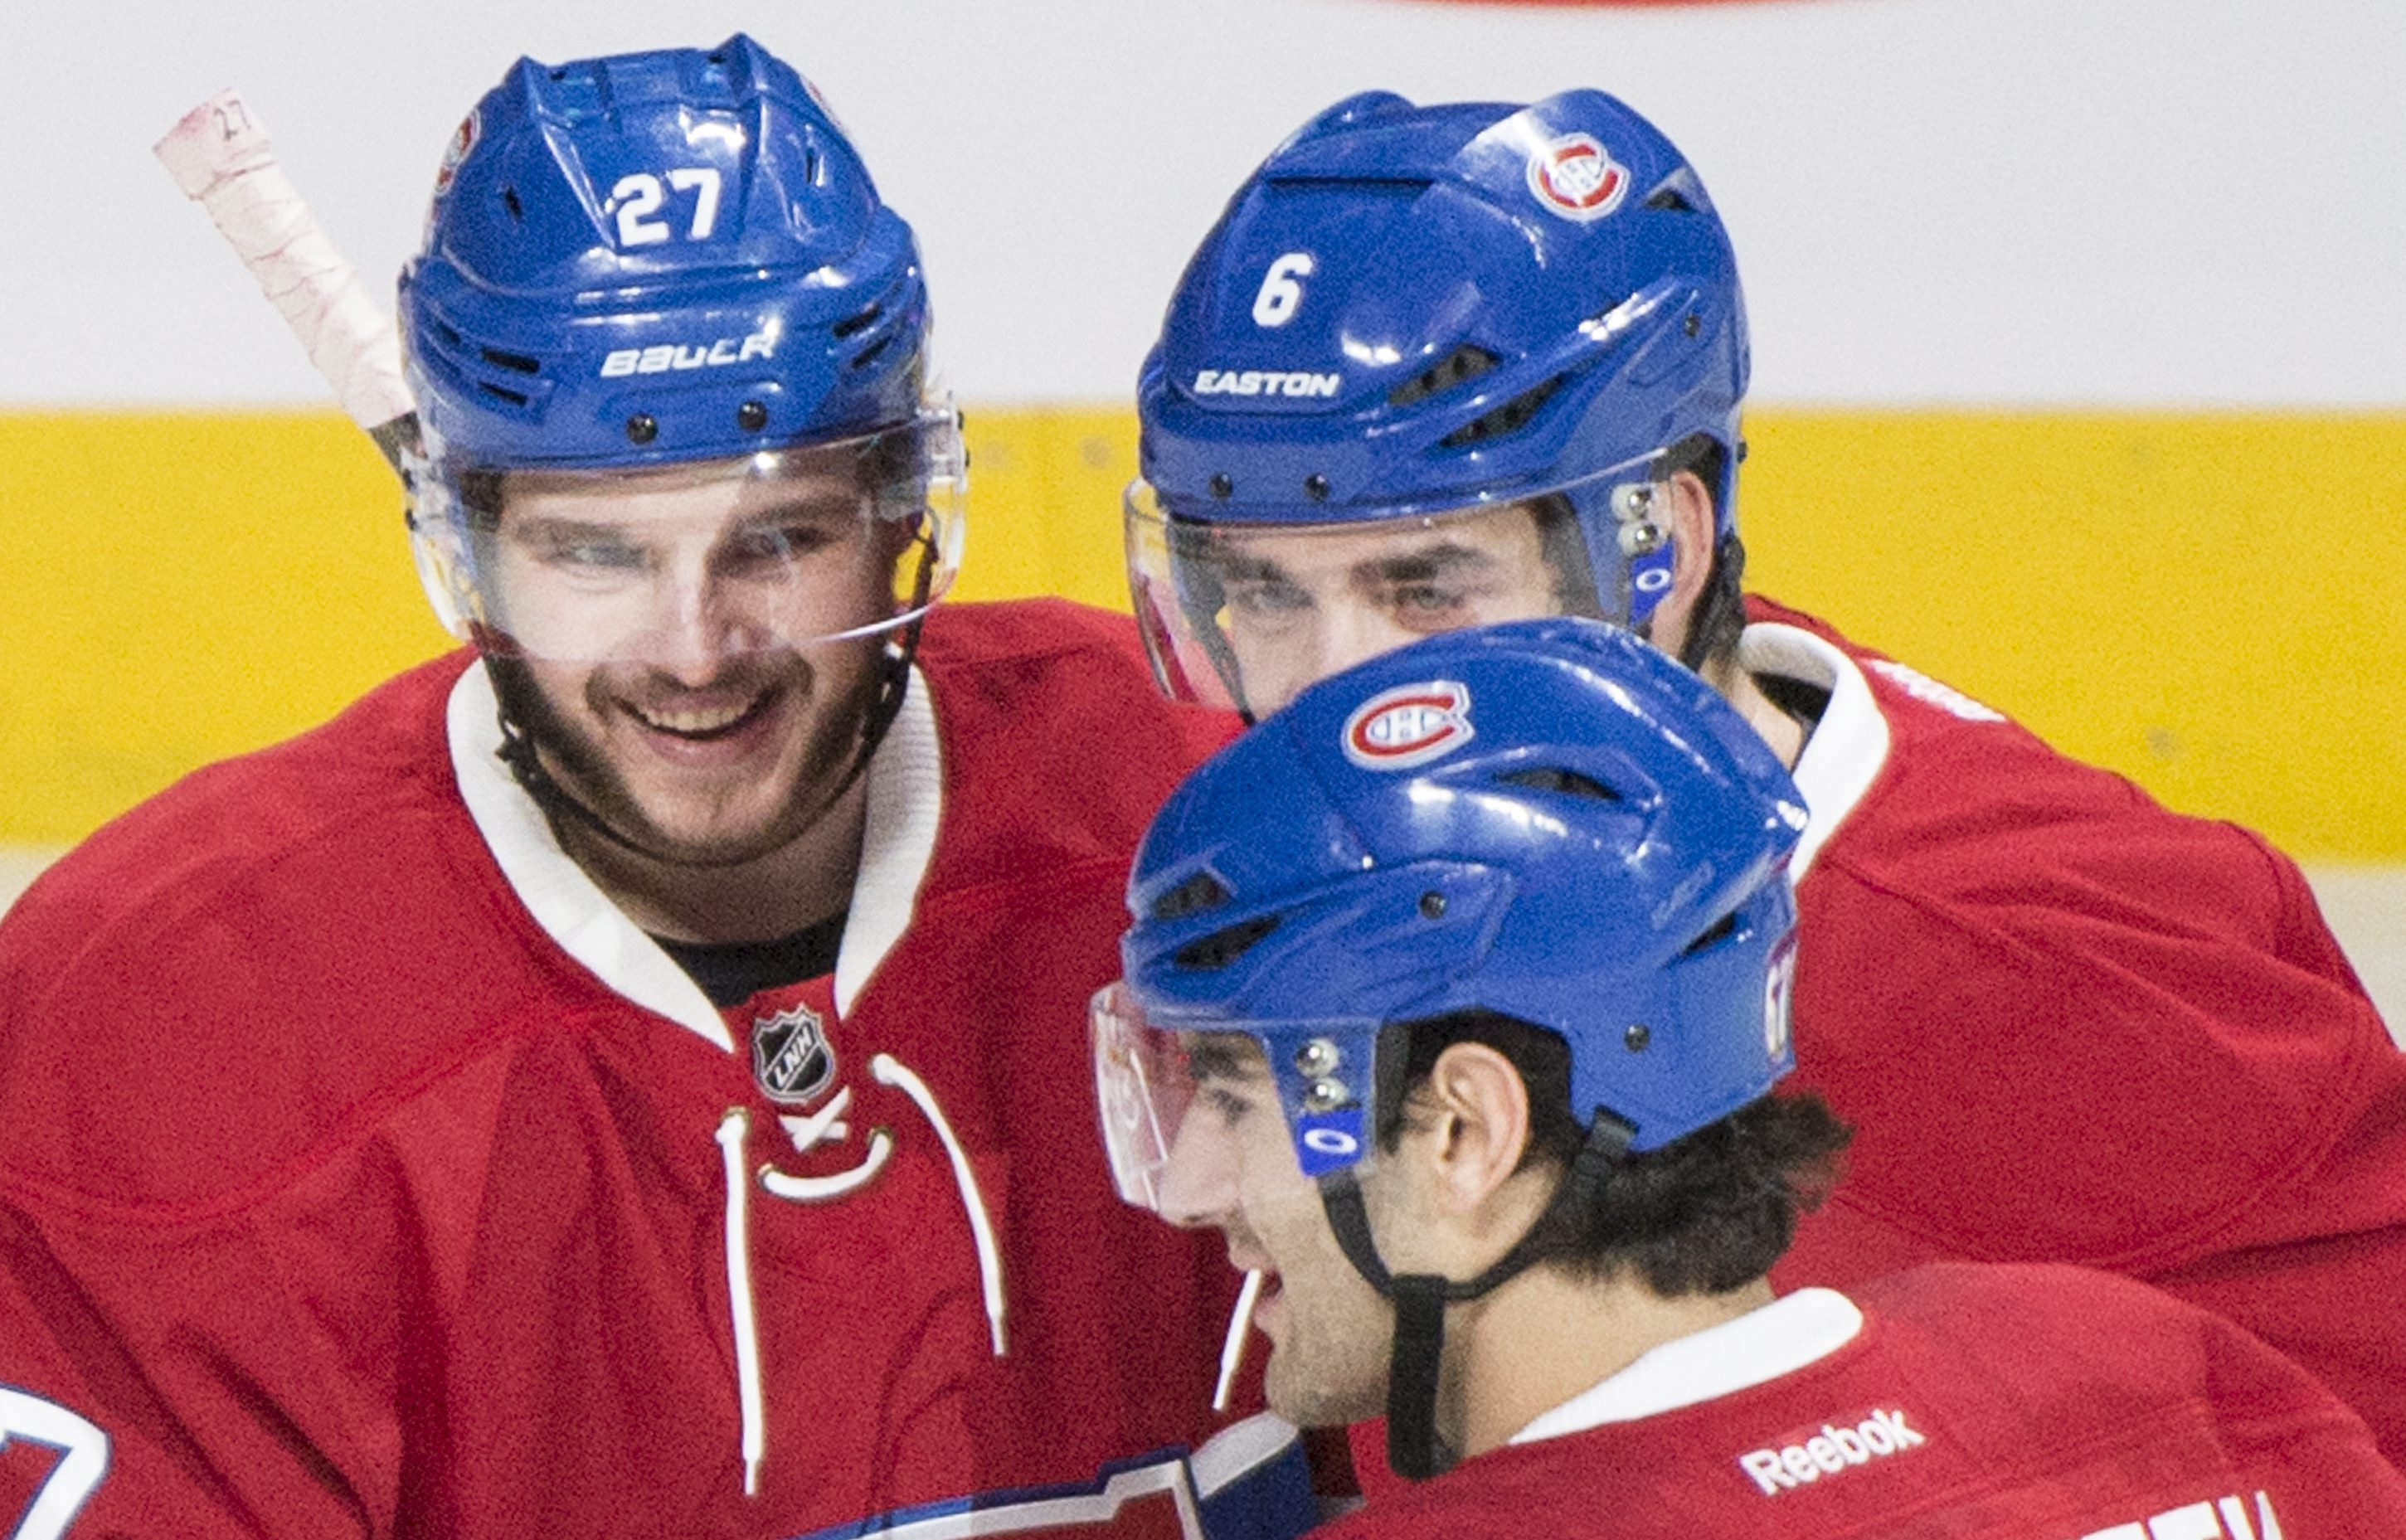 Montreal Canadiens' Alex Galchenyuk, left, celebrates with teammates Greg Pateryn (6) and Max Pacioretty (67) after scoring against the Tampa Bay Lightning during first-period NHL hockey game action in Montreal, Saturday, April 9, 2016. (Graham Hughes/The